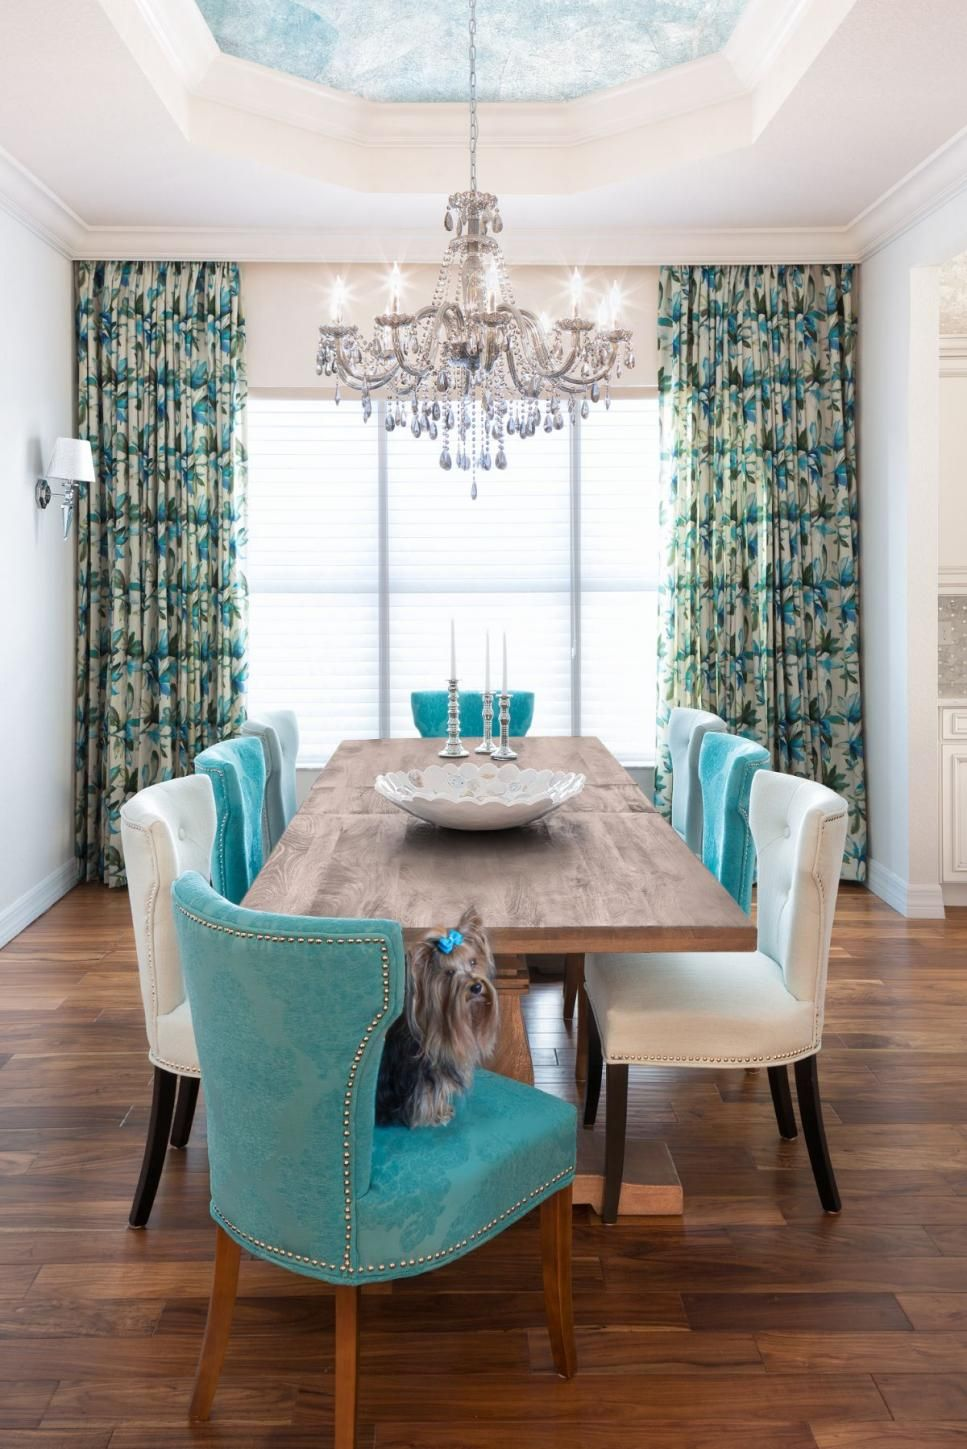 Alternating Turquoise And White Chairs Surround A Long Rustic Dining Table While A Sophisticated C Turquoise Dining Room Turquoise Room Living Room Turquoise